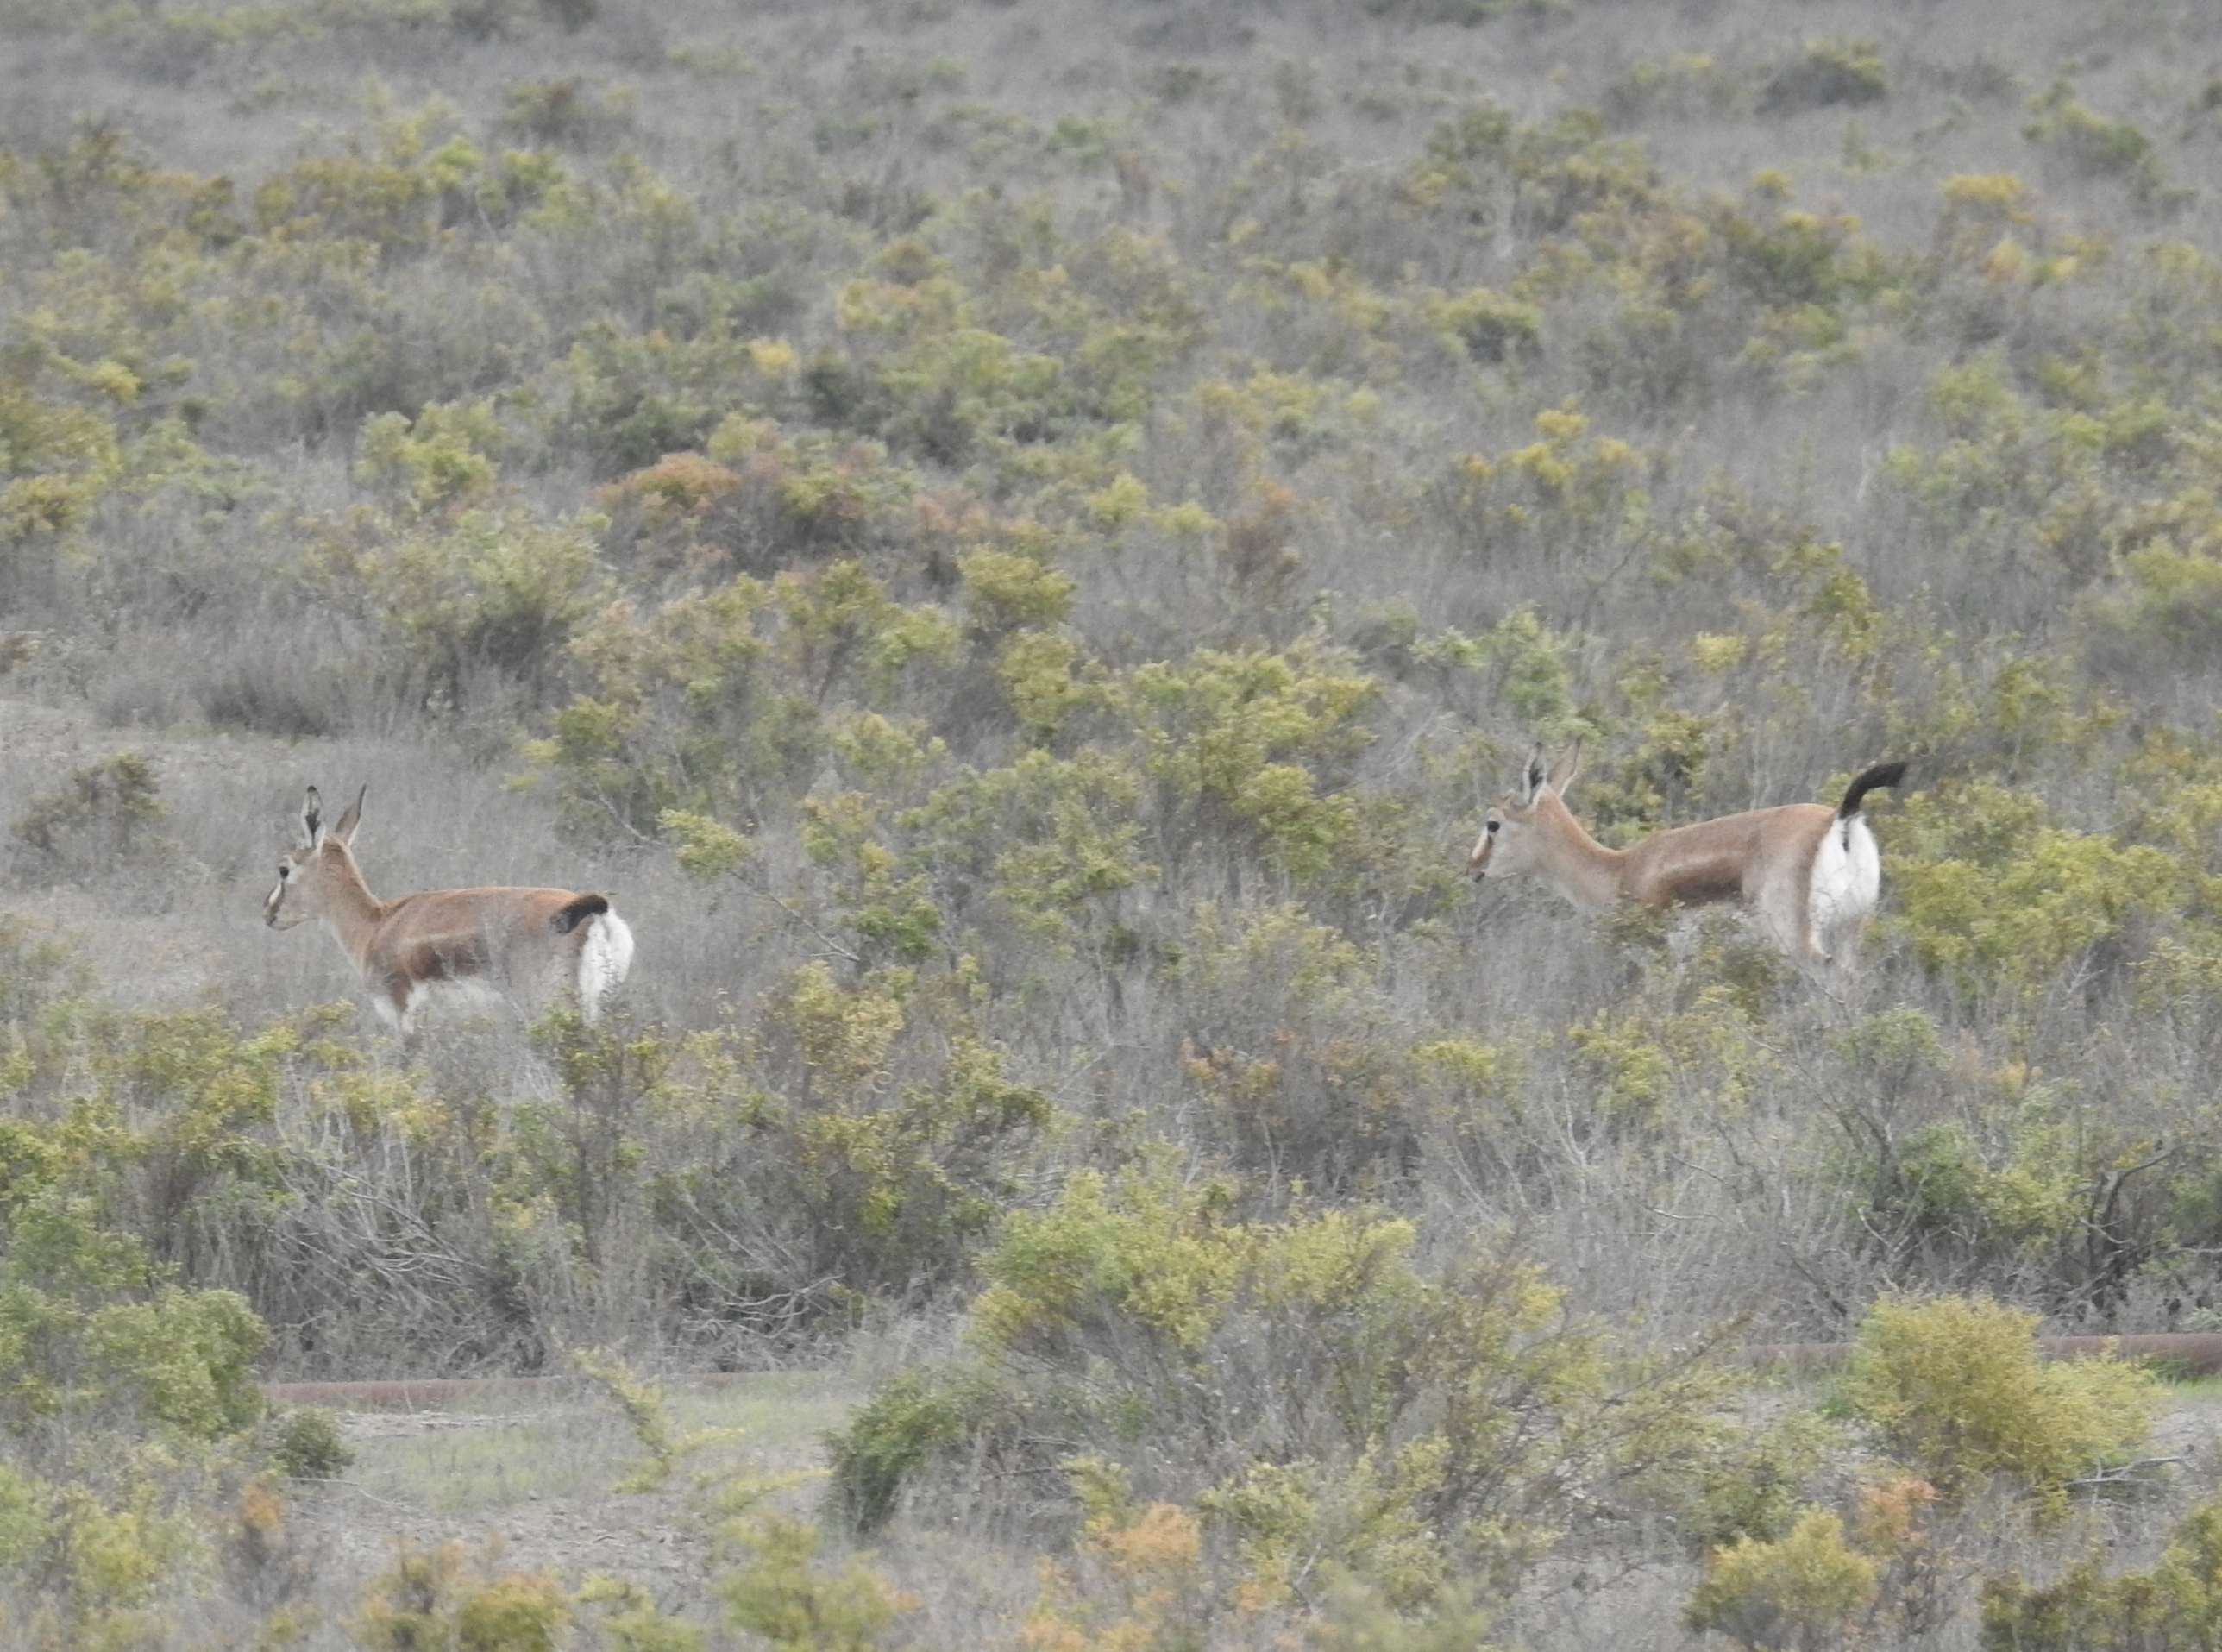 Female Gazelles